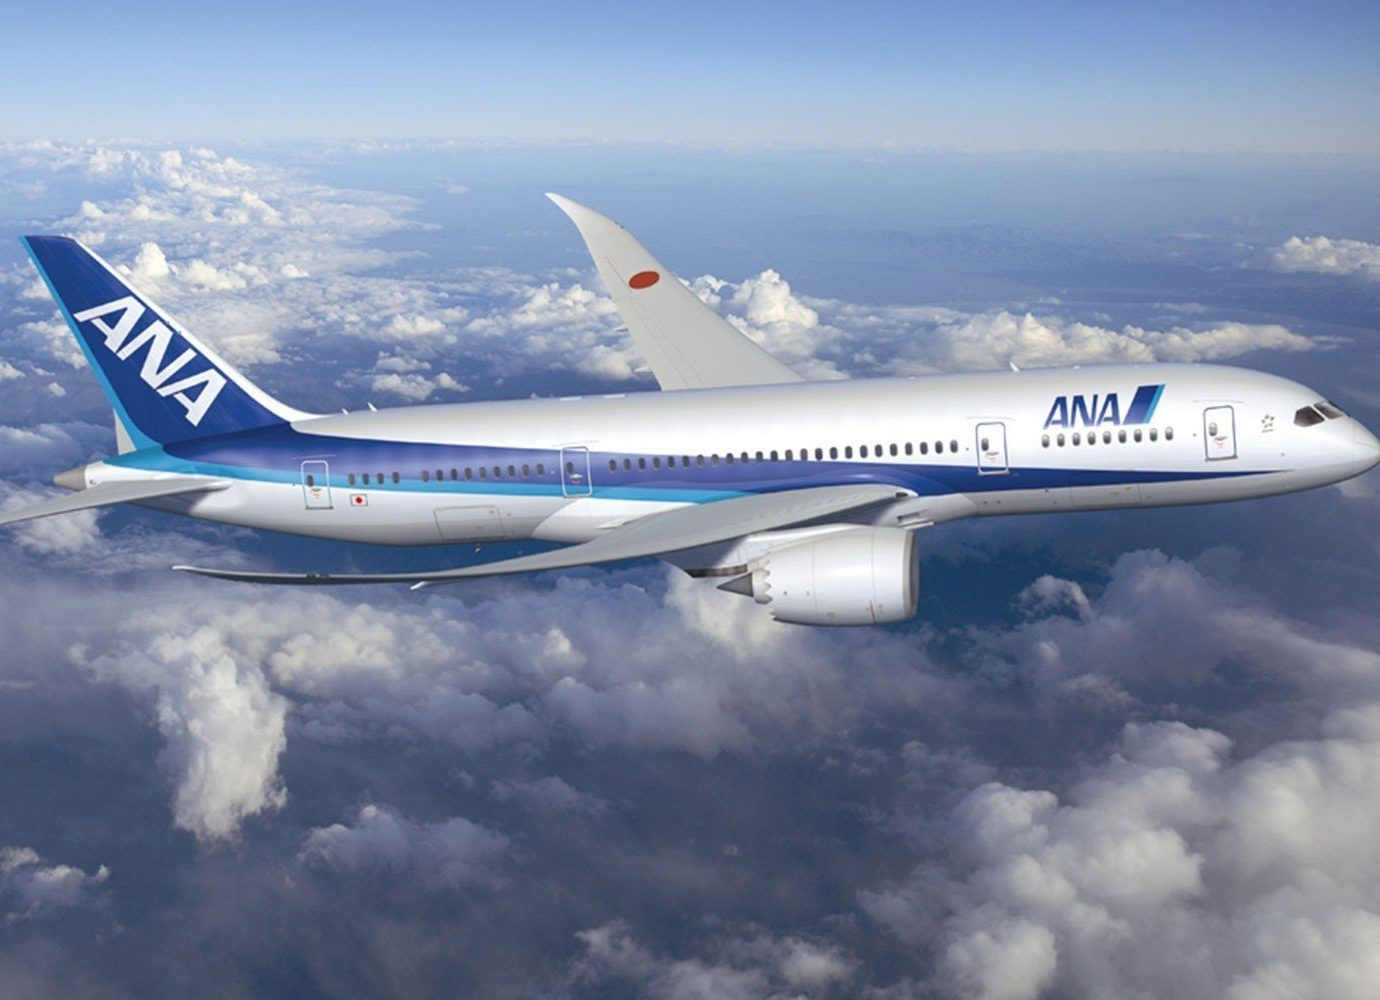 Travel Tips sky plane outdoor airplane airliner vehicle airline wide body aircraft large flying air travel aircraft boeing cloudy jet aircraft clouds atmosphere of earth transport aviation air boeing 767 boeing 787 dreamliner jet boeing 777 airbus a330 blue narrow body aircraft aerospace engineering airbus flight wing day